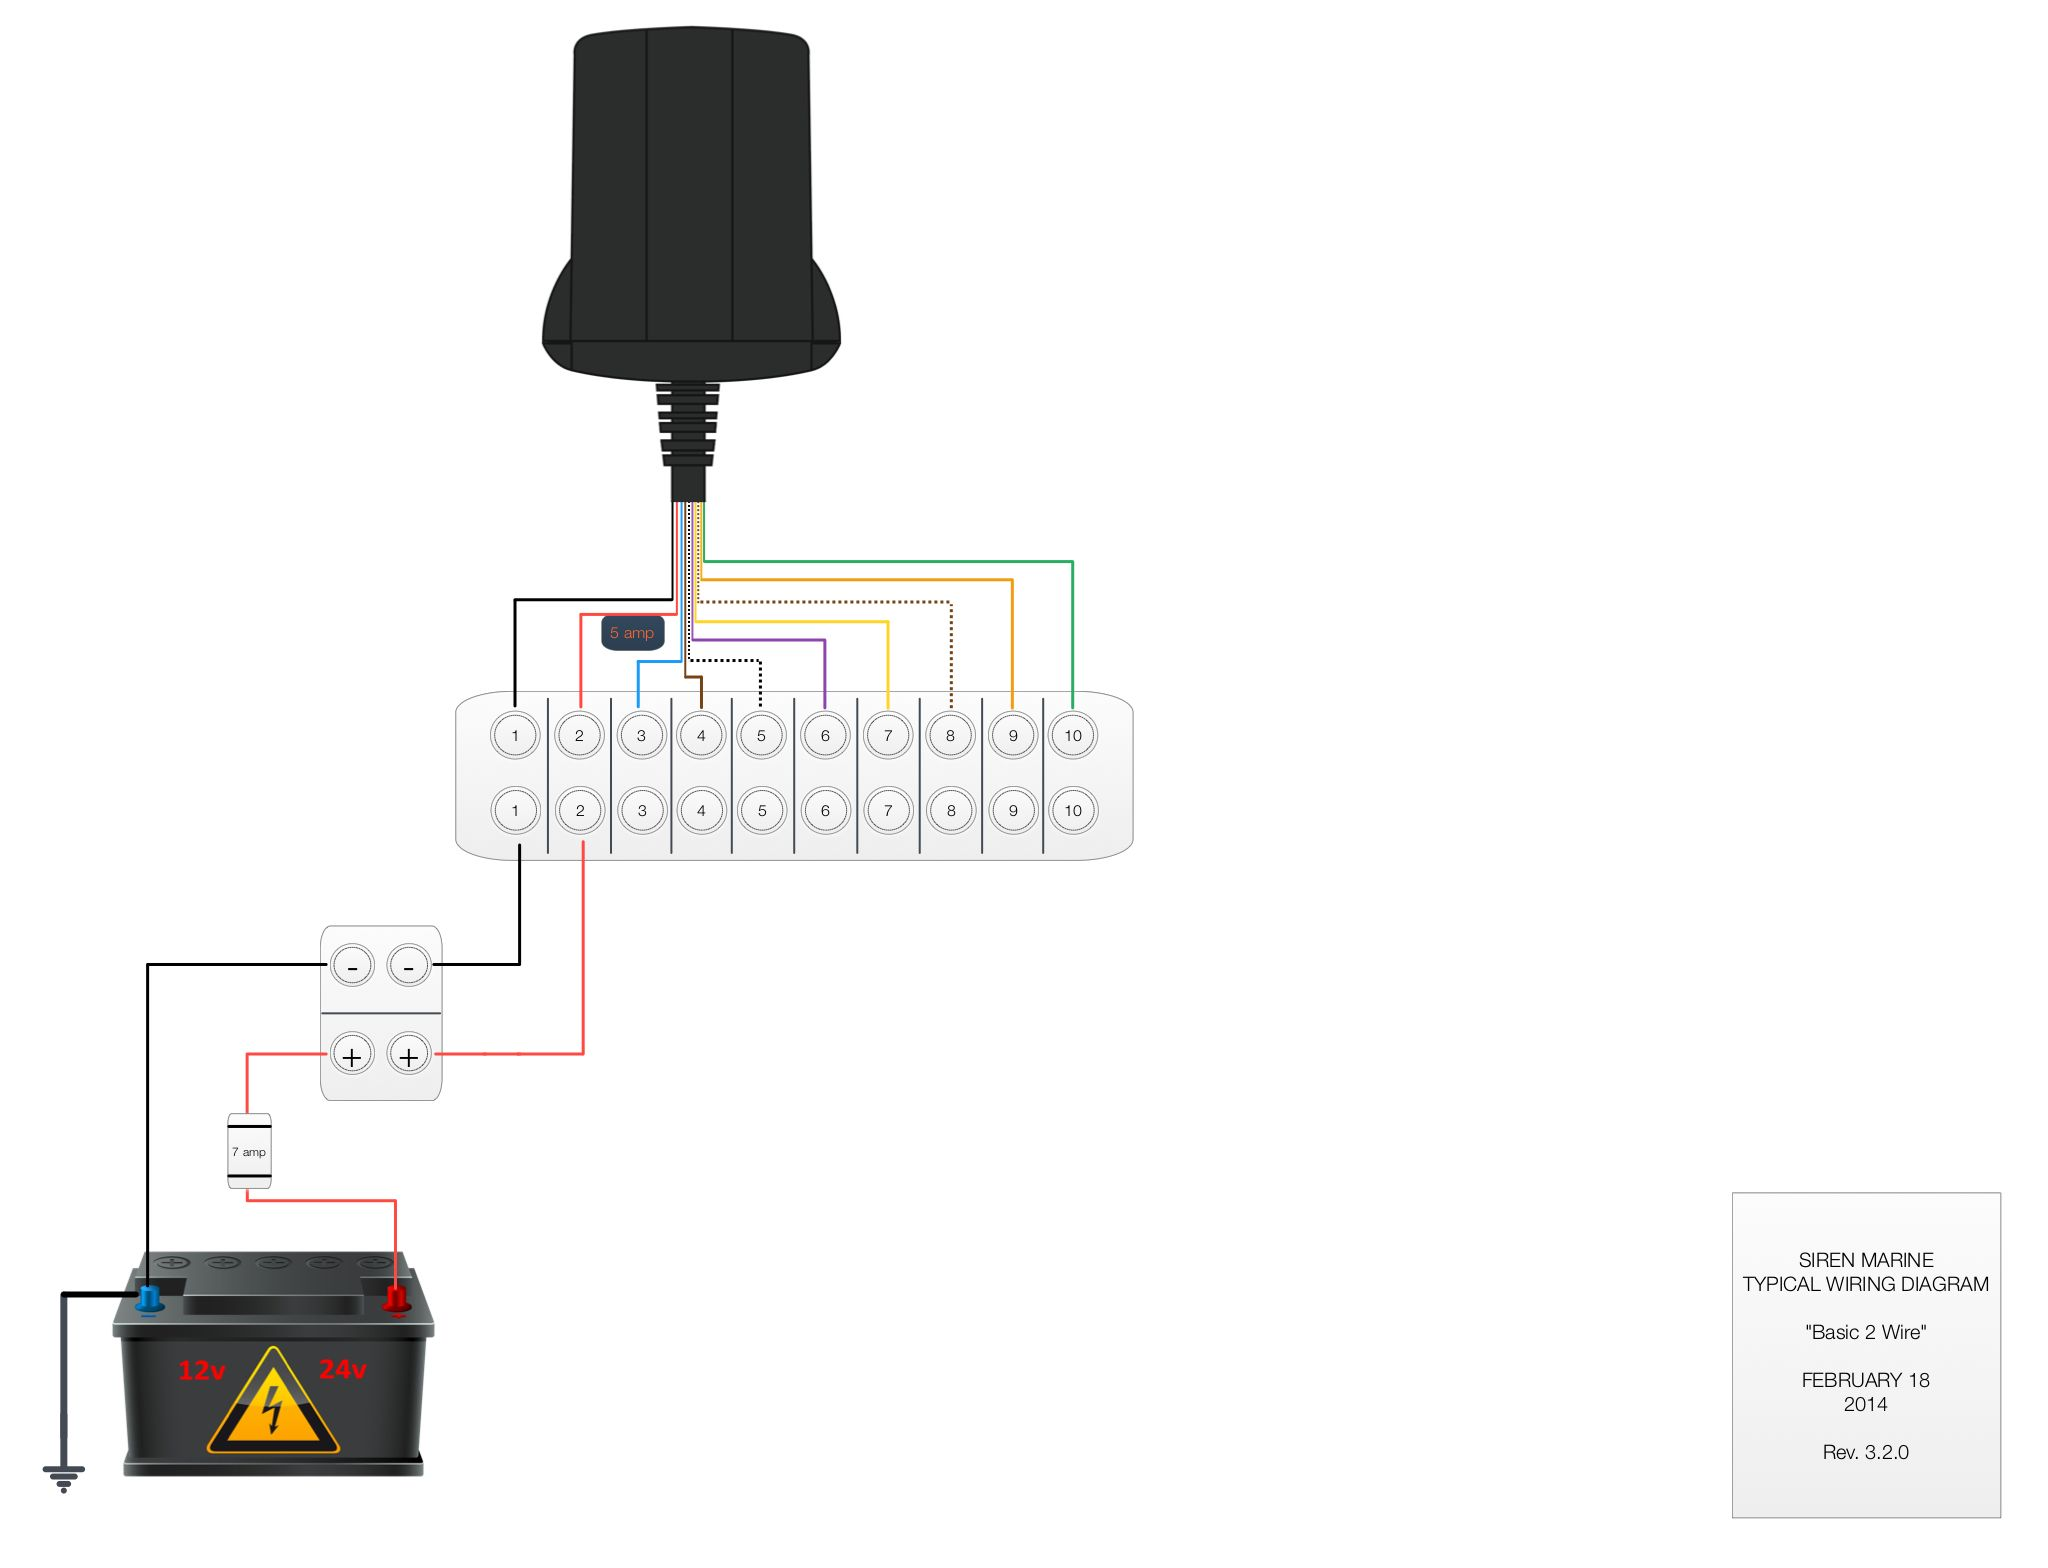 This Is A Basic 2 Wire Pixie Or Sprite Wiring Diagram With Just Two Street Light Wires